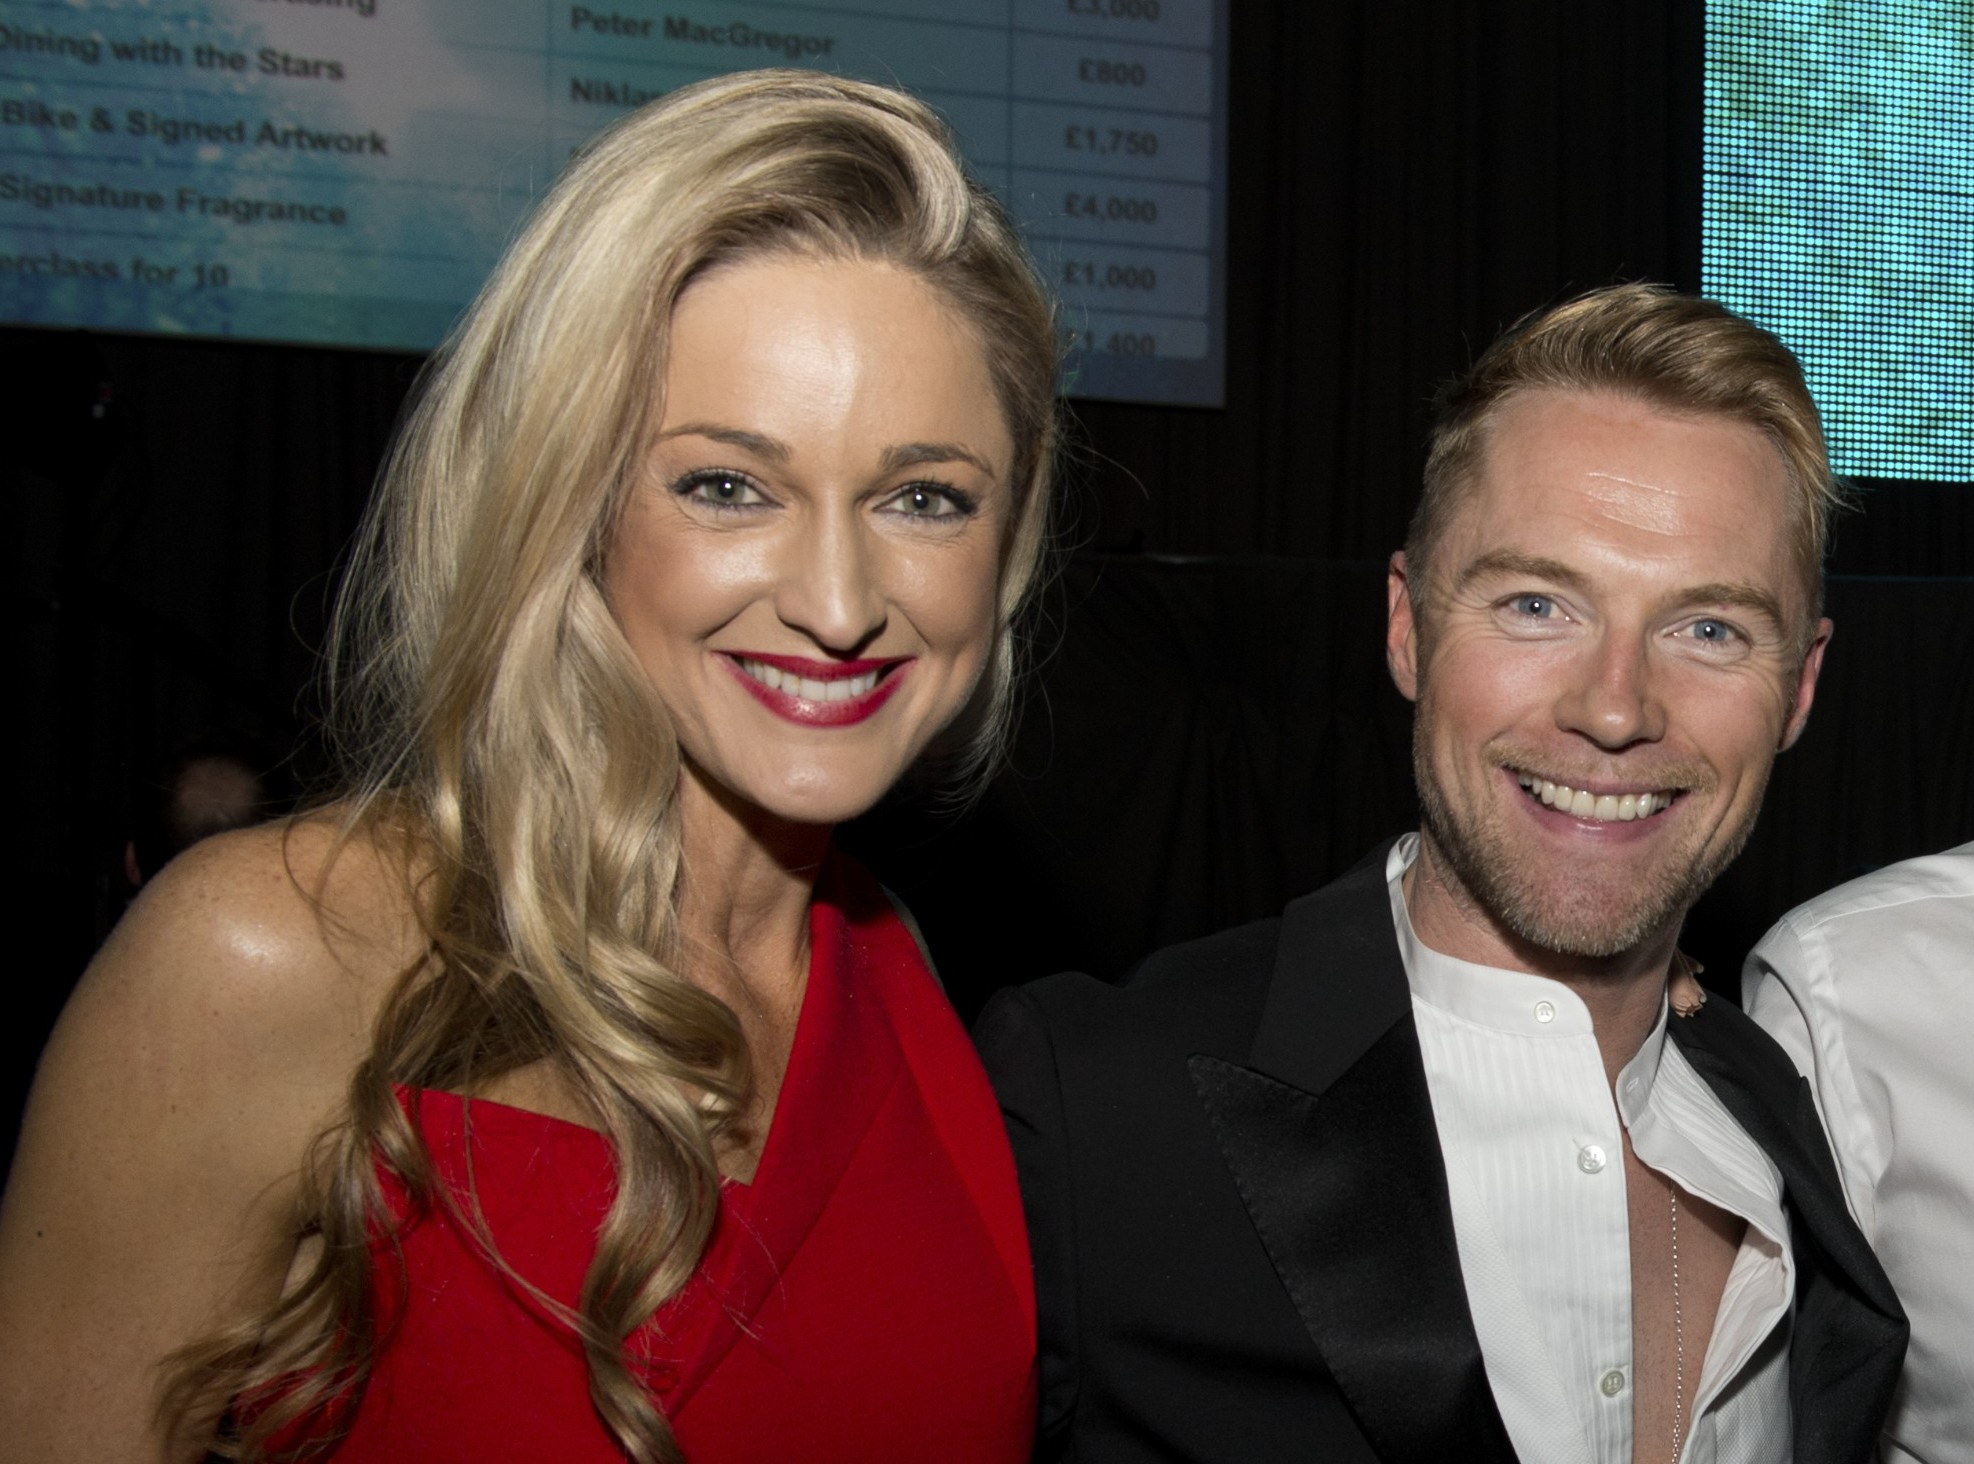 Boyzone perform at Emeralds and Ivy Ball